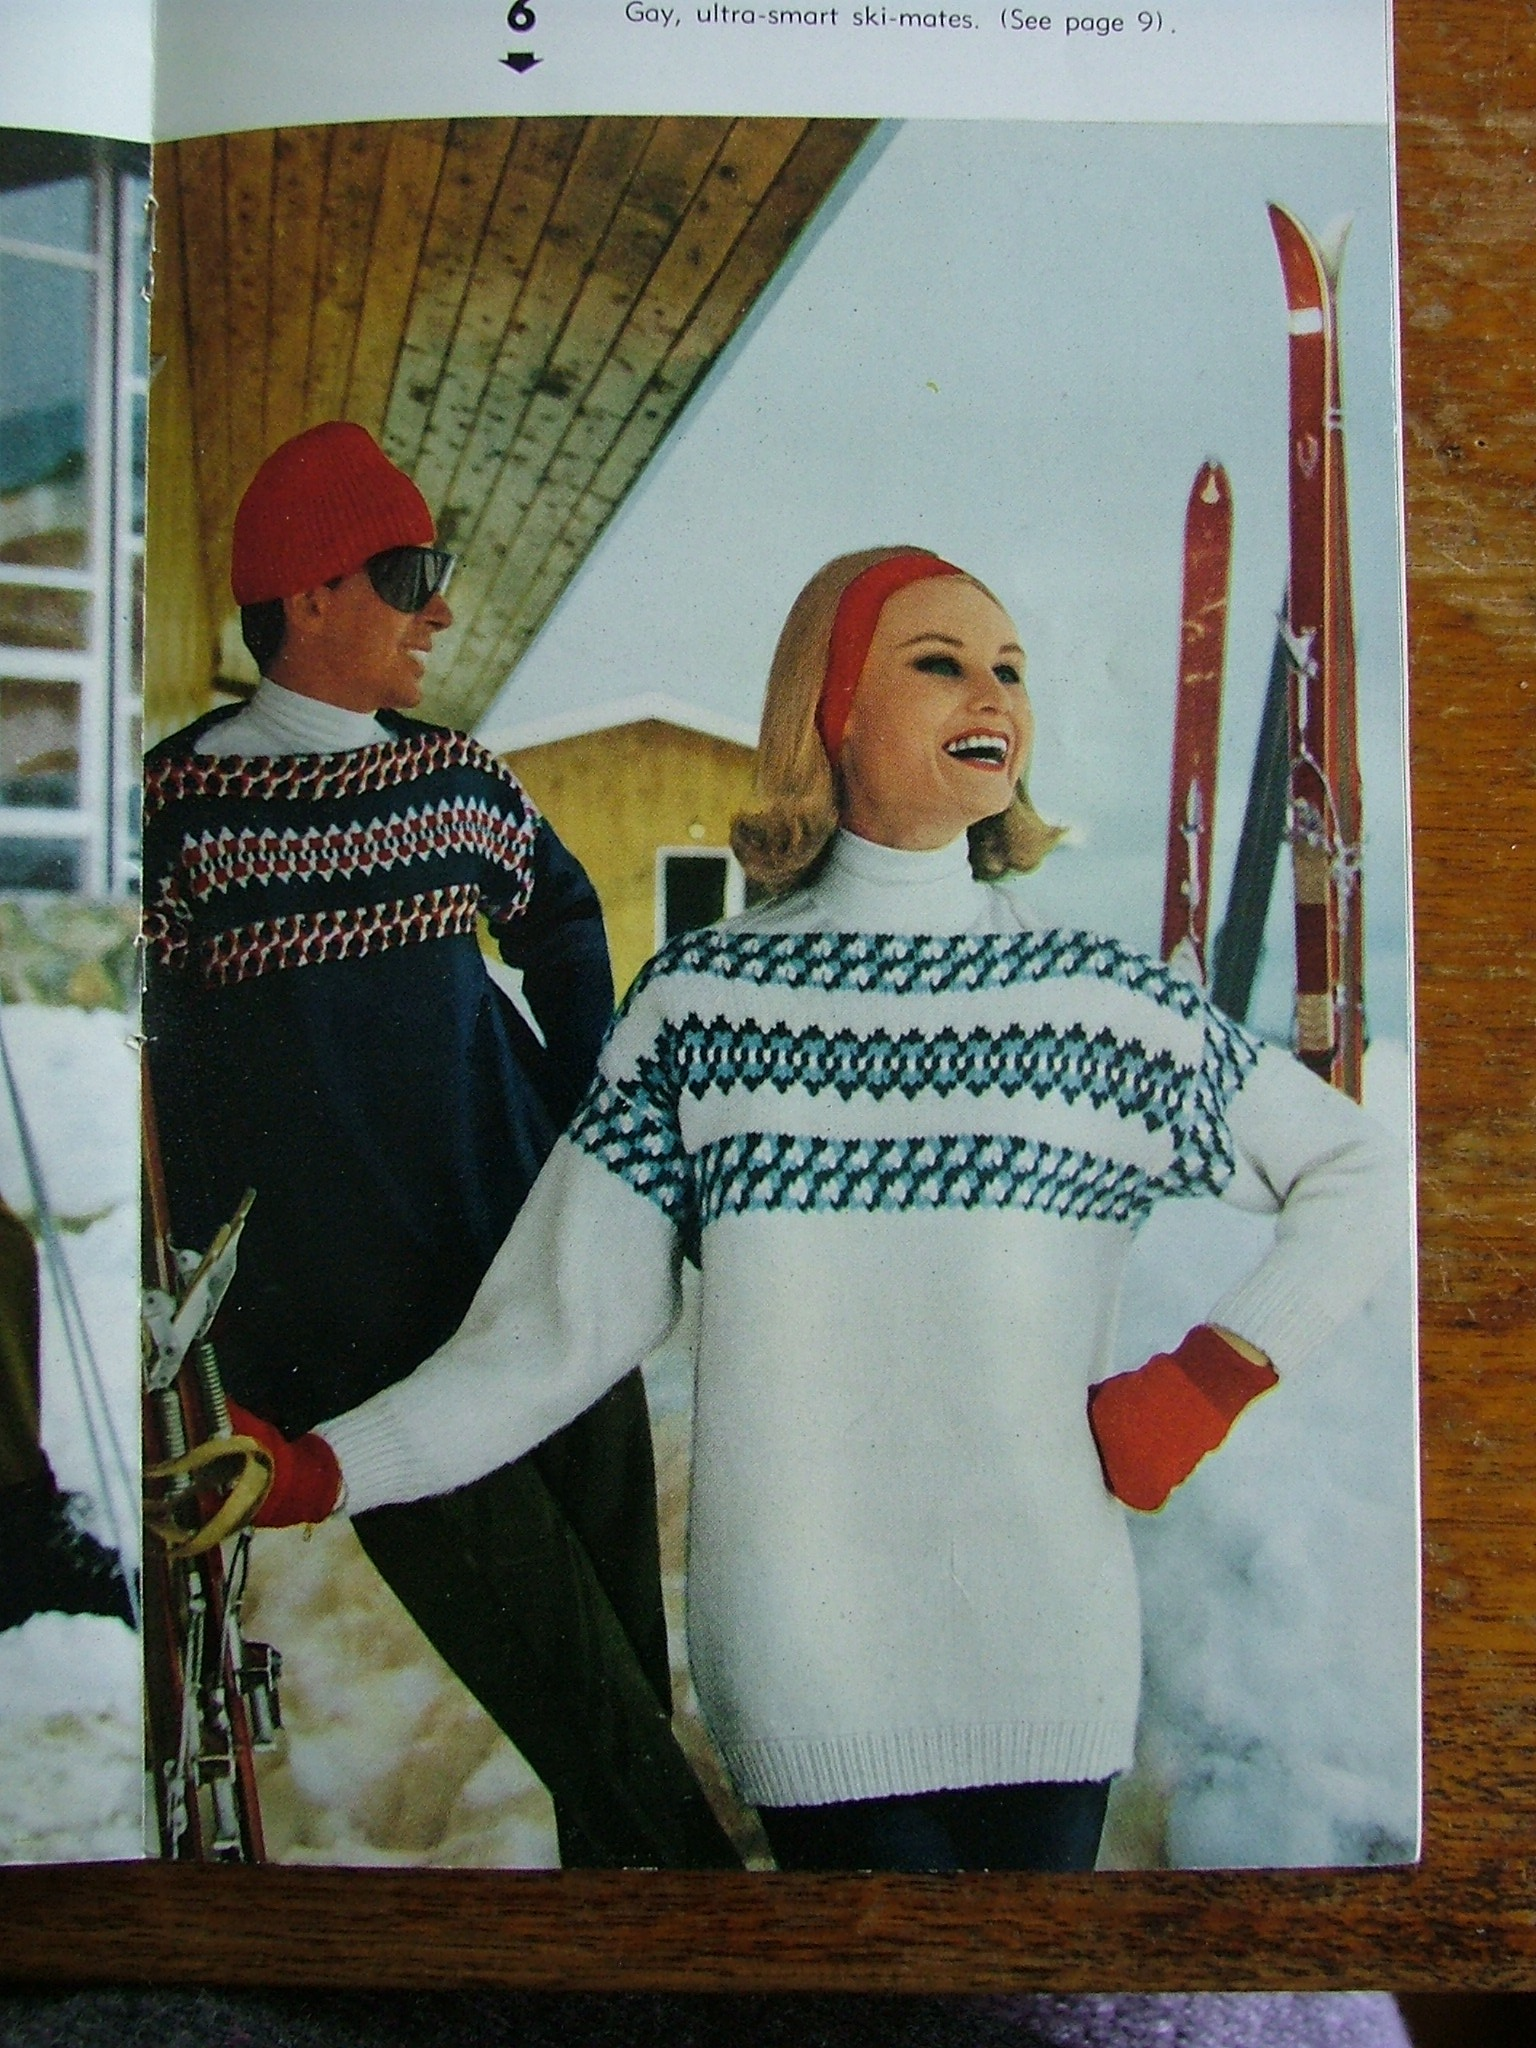 Ski and Sail by villawool p11 photo source:theartofcostume.wordpress.com